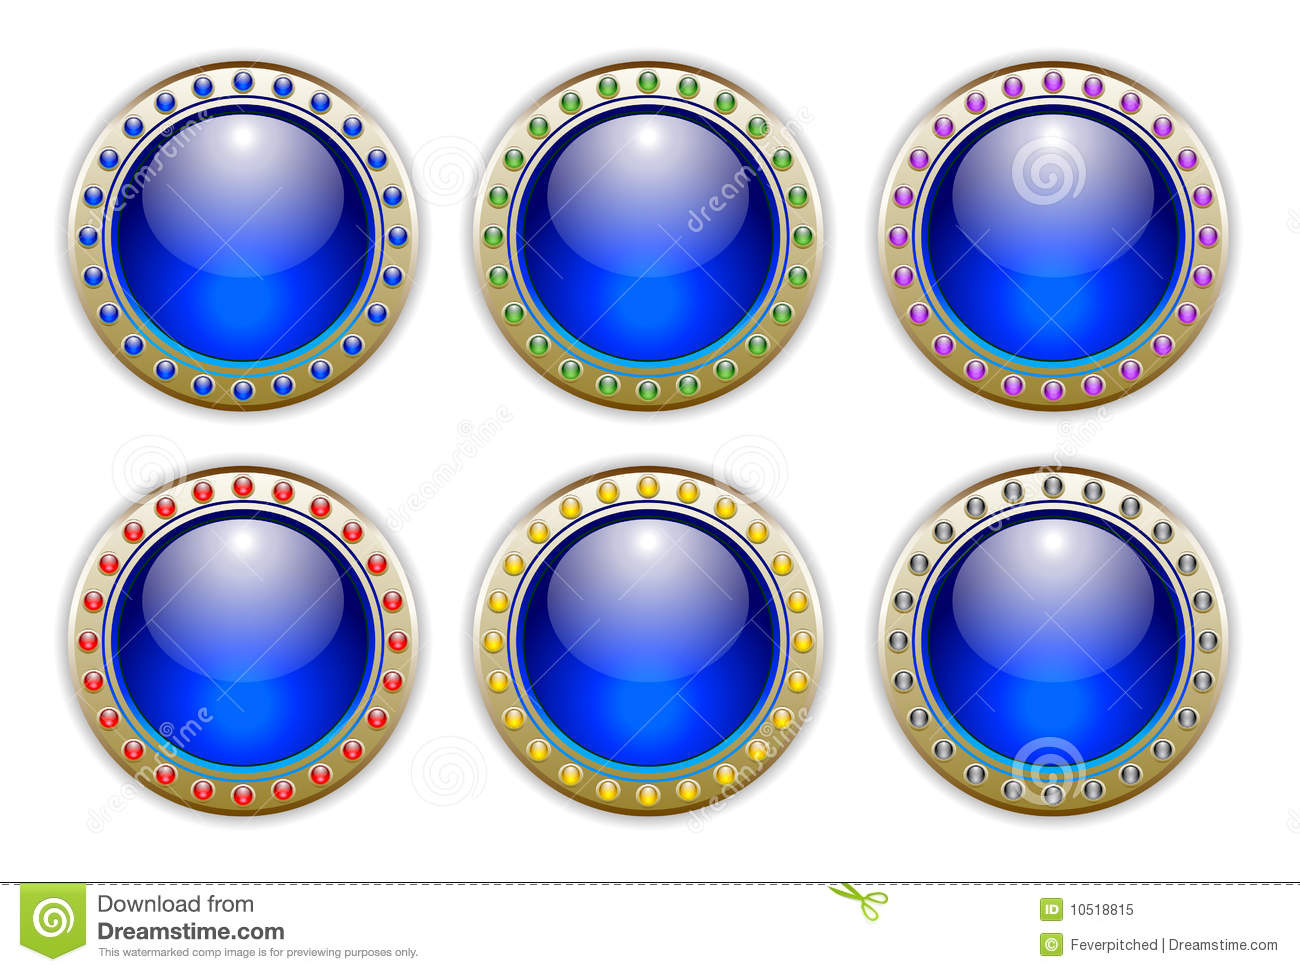 Blue Set of 6 Color Combinations Glossy Buttons